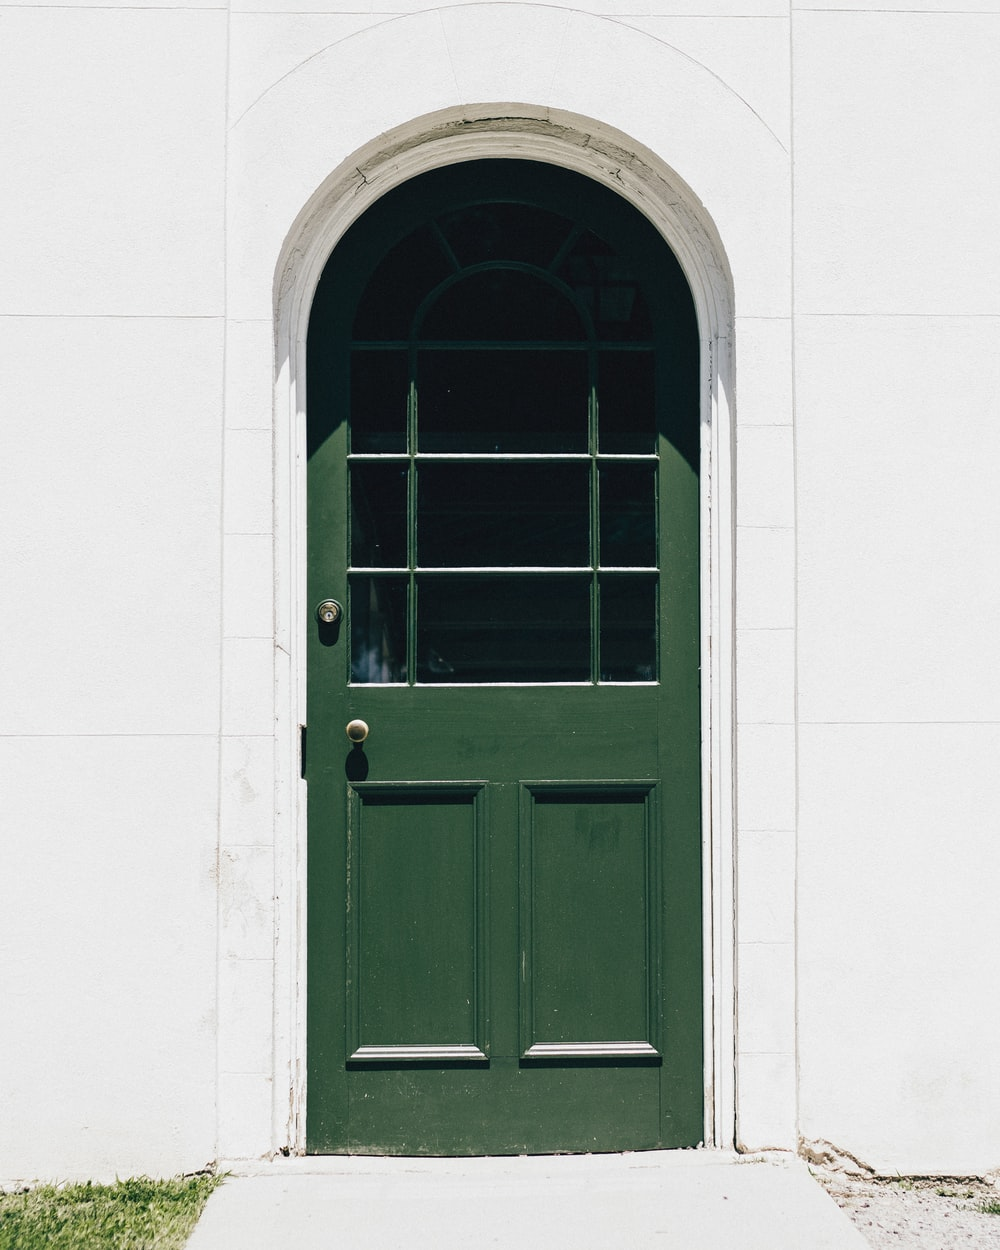 White Arched Doorway Photo By Andrik Langfield Thealpphotography